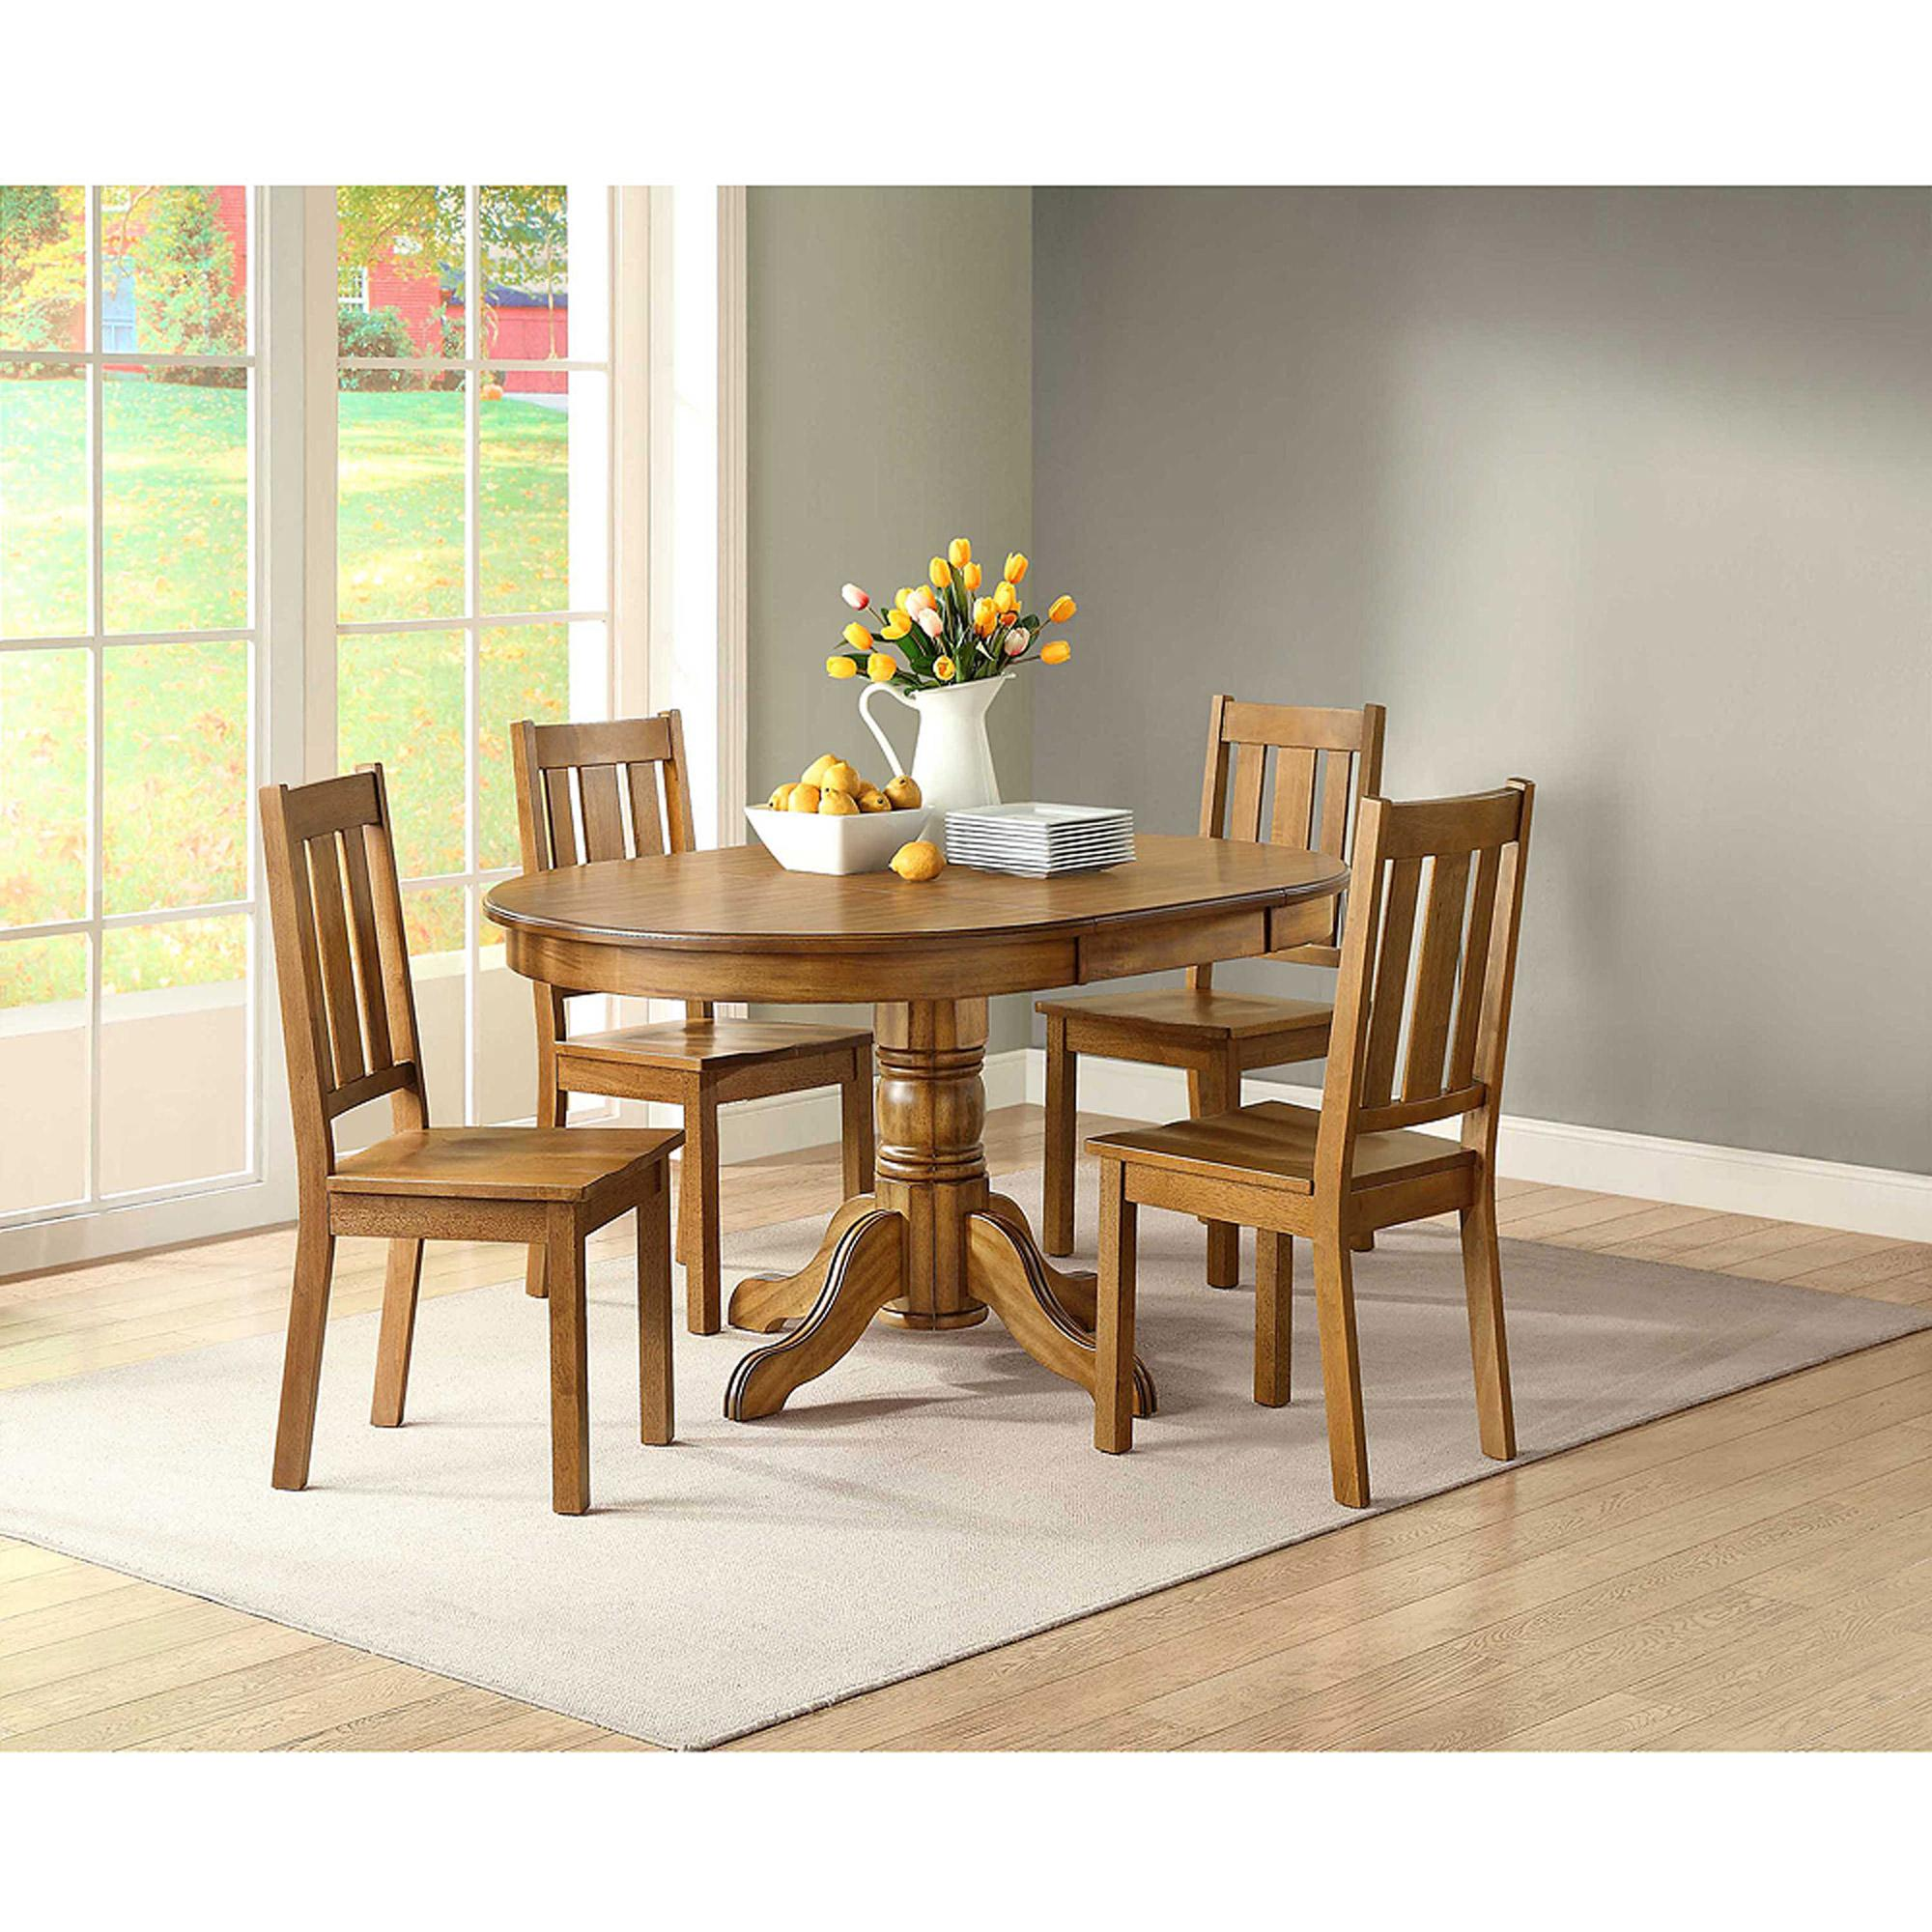 Better homes and gardens bankston dining chair set of 2 - Better homes and gardens dining set ...